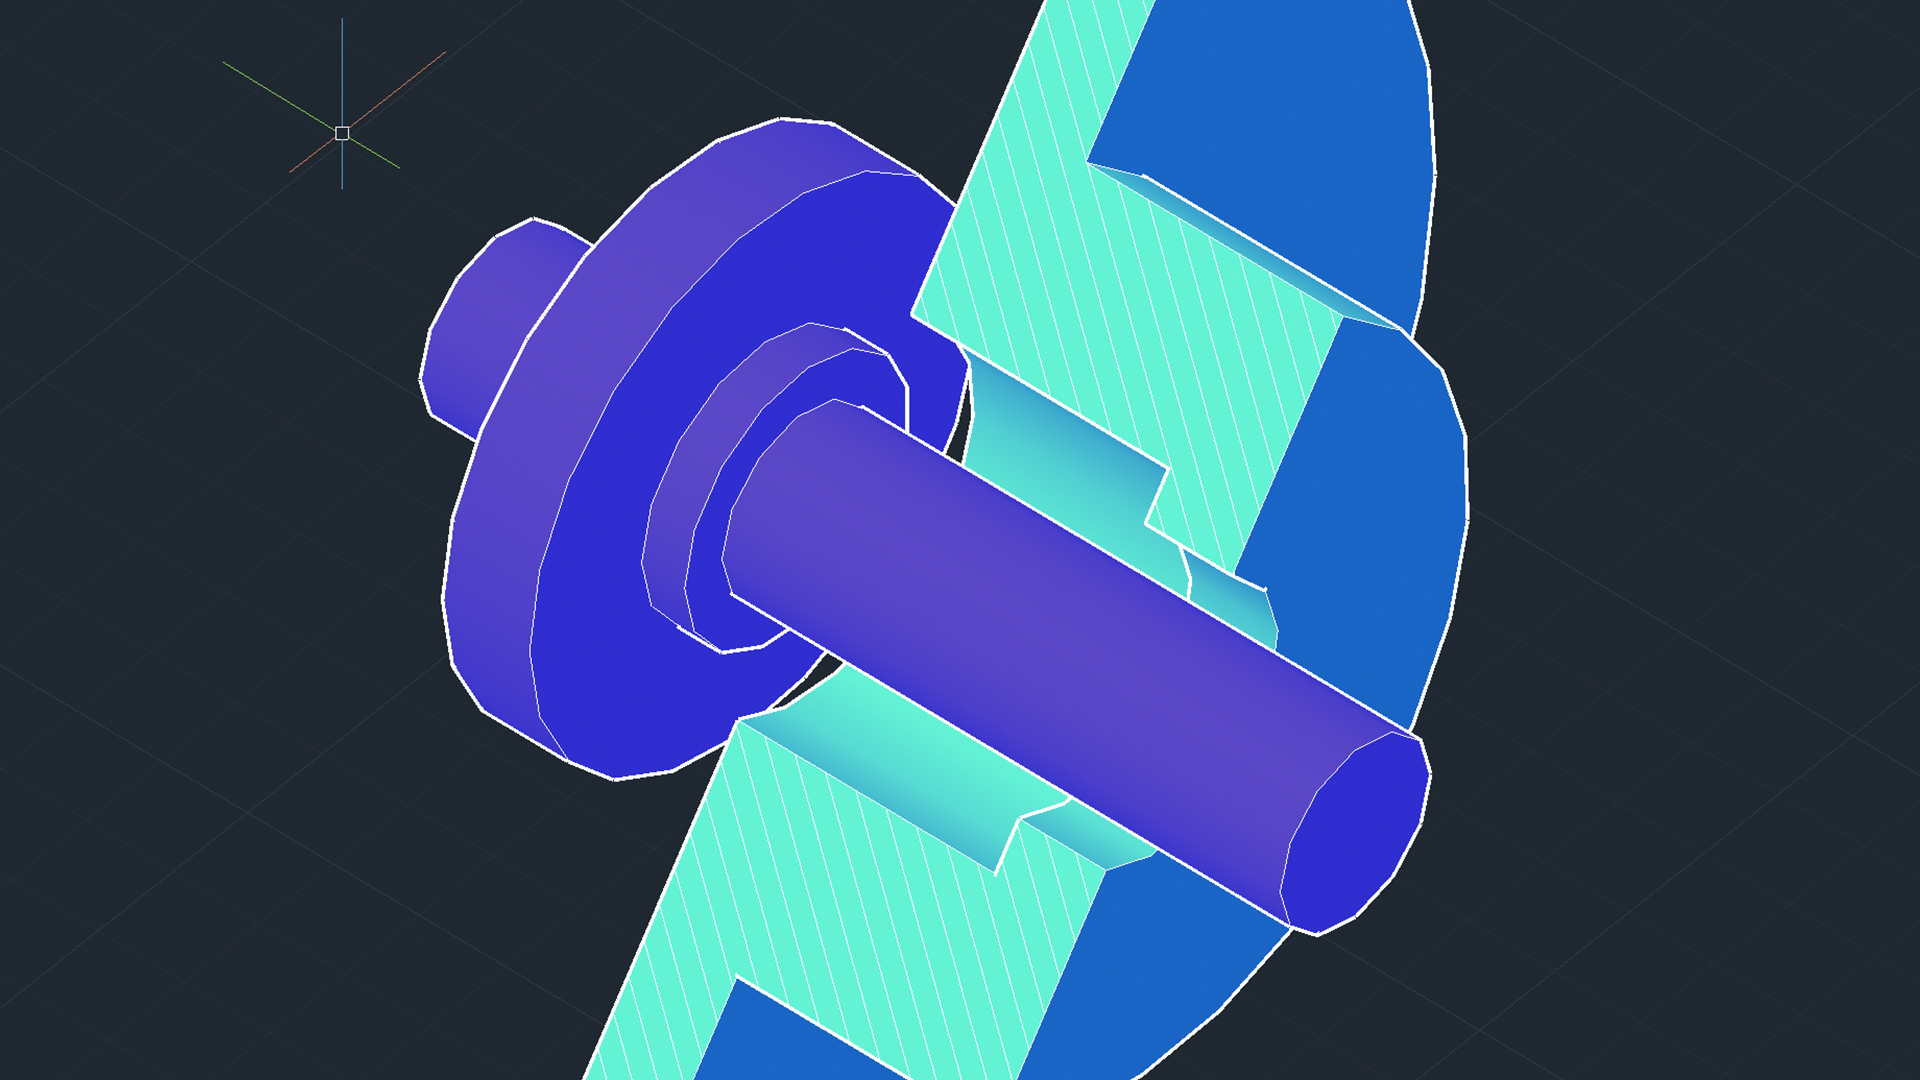 Layer tools - AutoCAD for Mac 2018 Essential Training